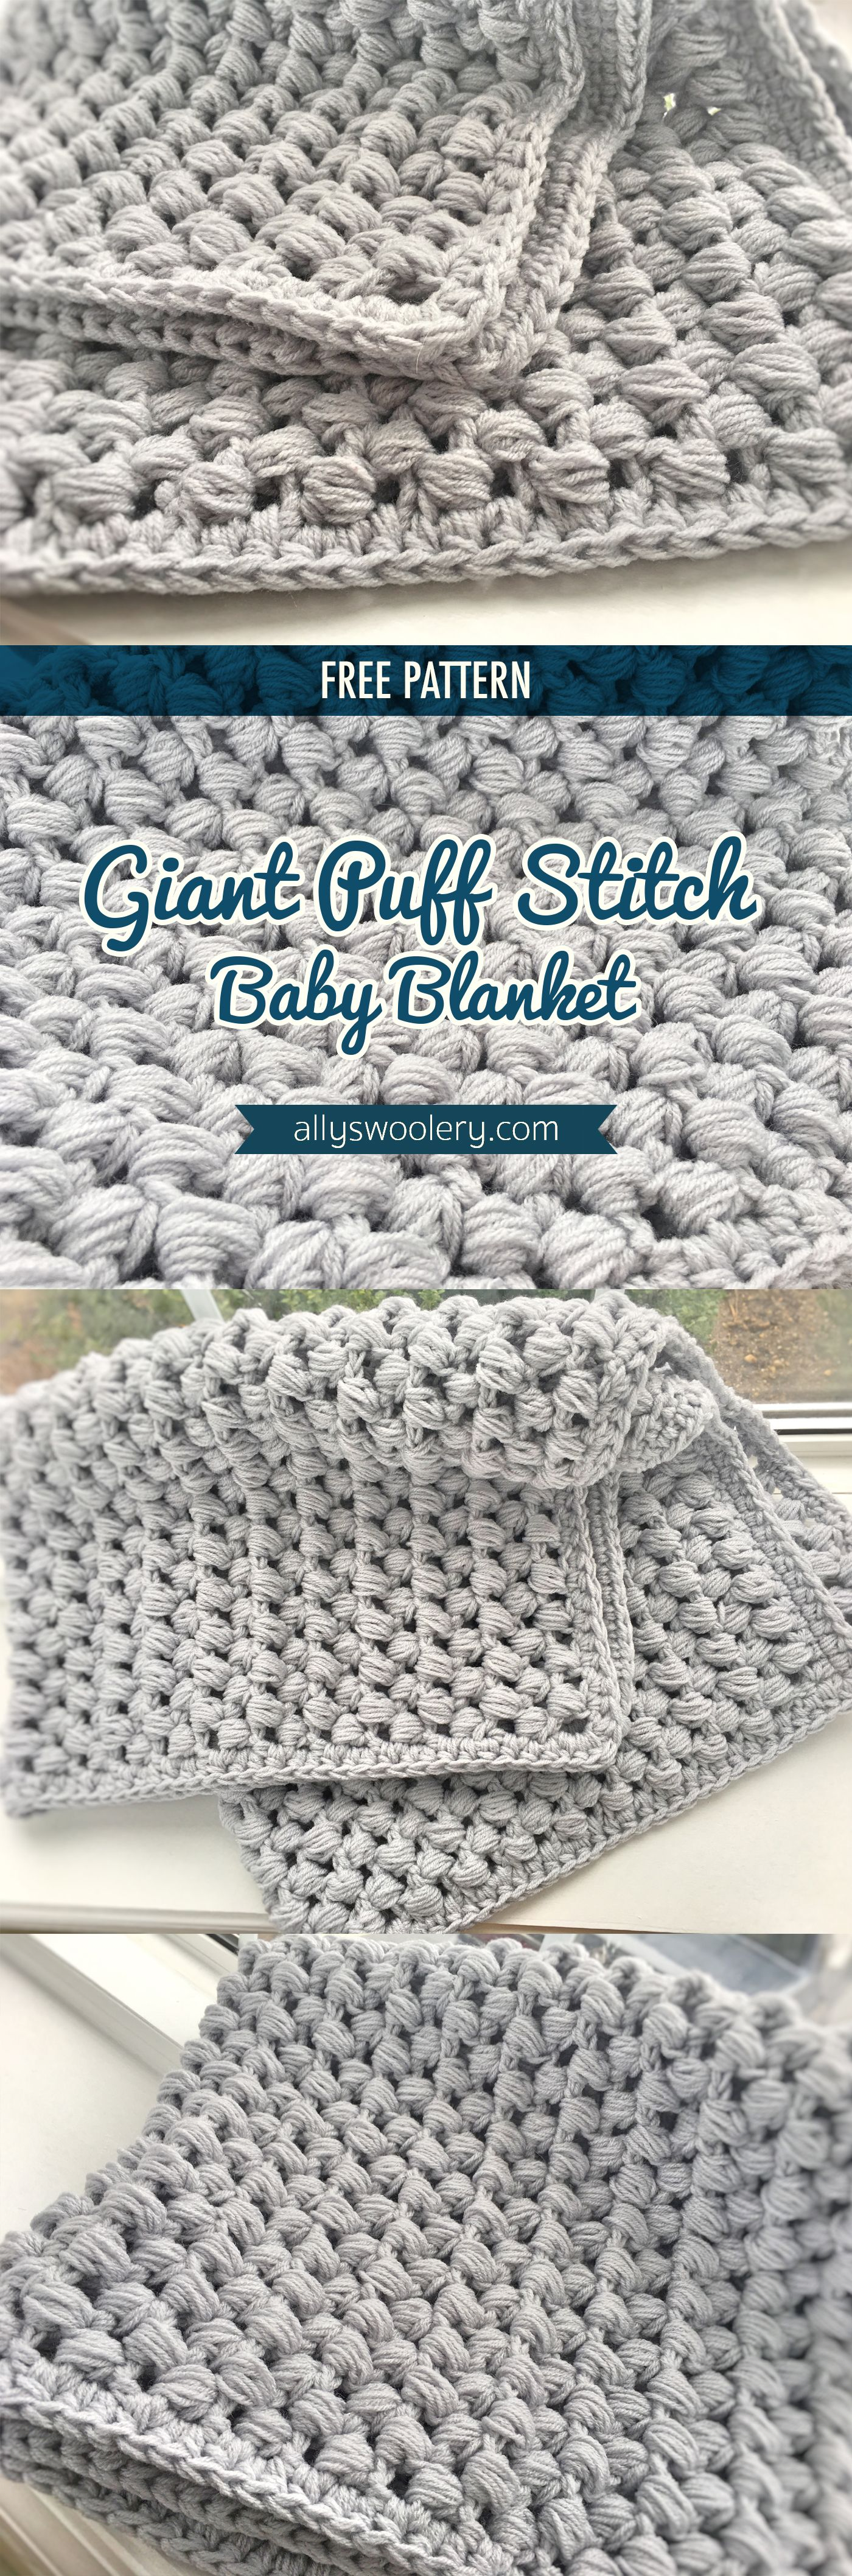 Diy crochet 6 petal puff stitch flower blanket -  Free Pattern Giant Puff Stitch Baby Blanket From Ally S Woolery